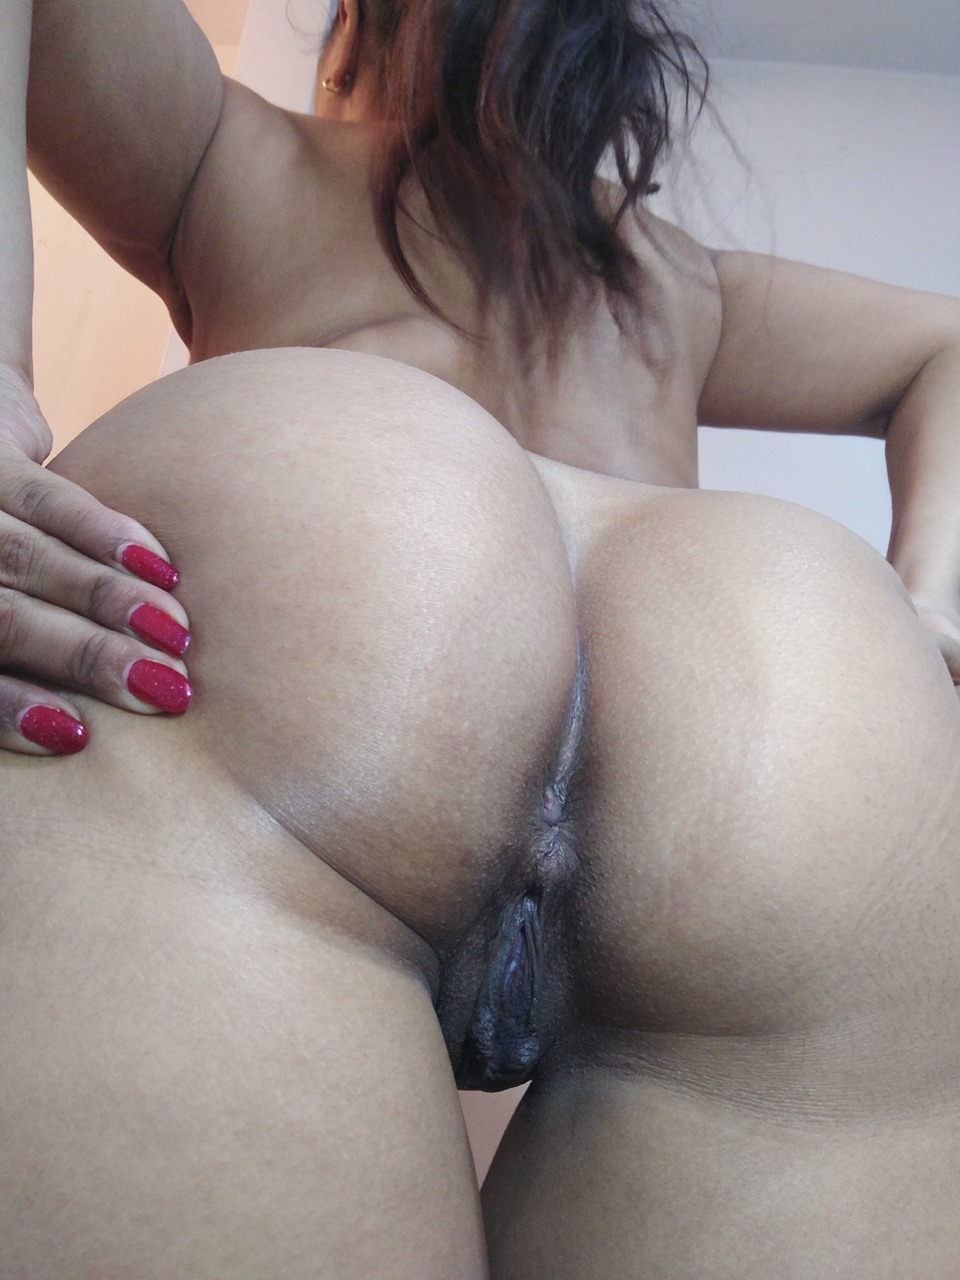 Booty shaking playlist songs to shake your booty to  priya anjali rai xxx porn ebony pornography videos